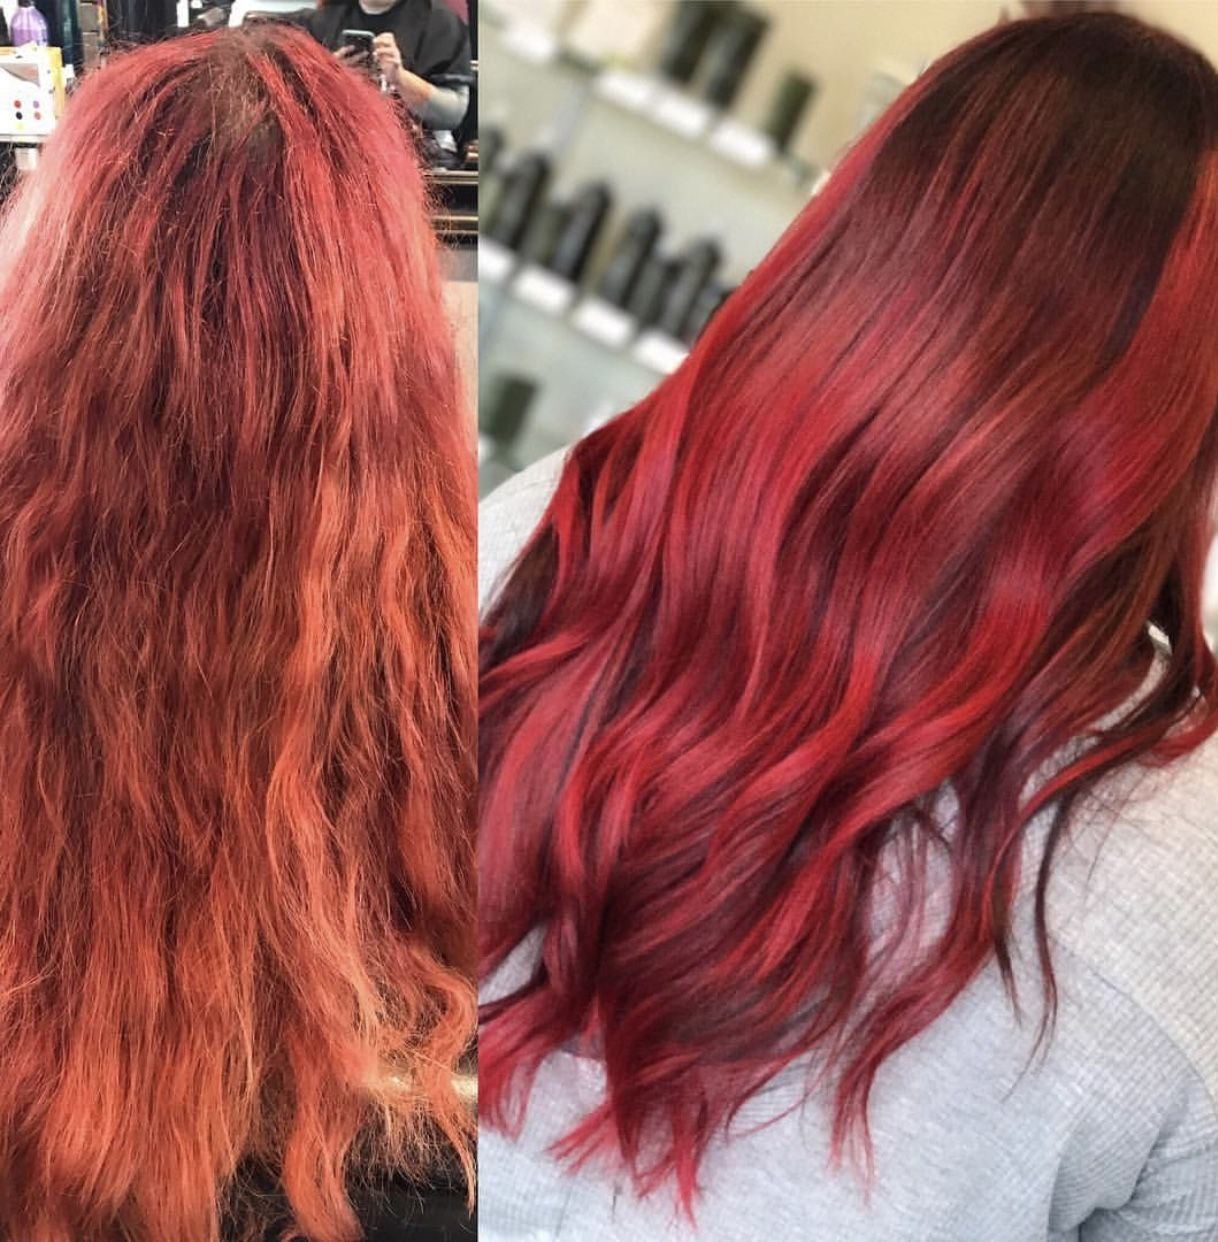 Red Hair Makeover Before And After Hair Color Long Hair Bright